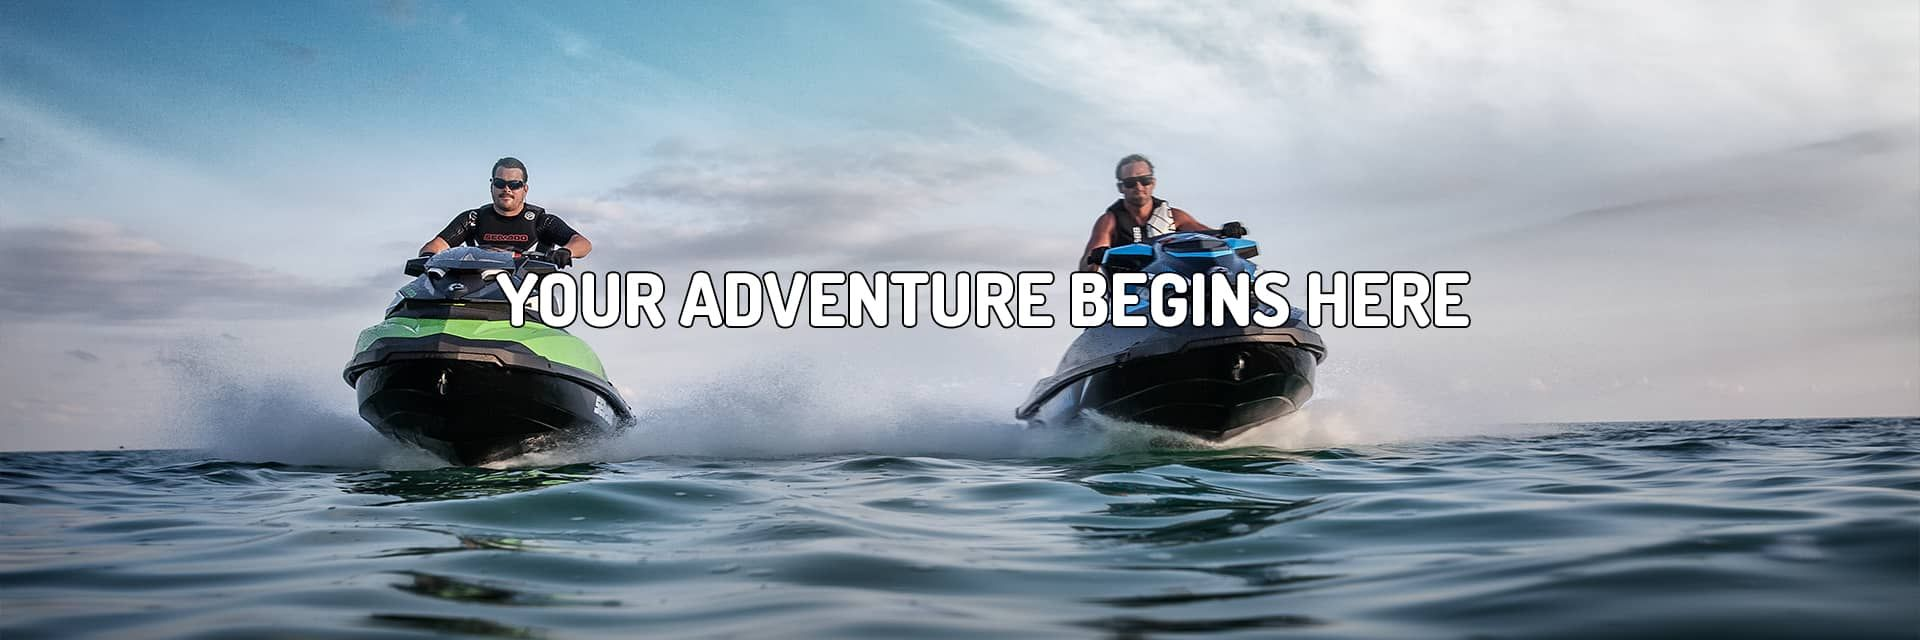 Sea-Doo is available at Powersports360 | OH